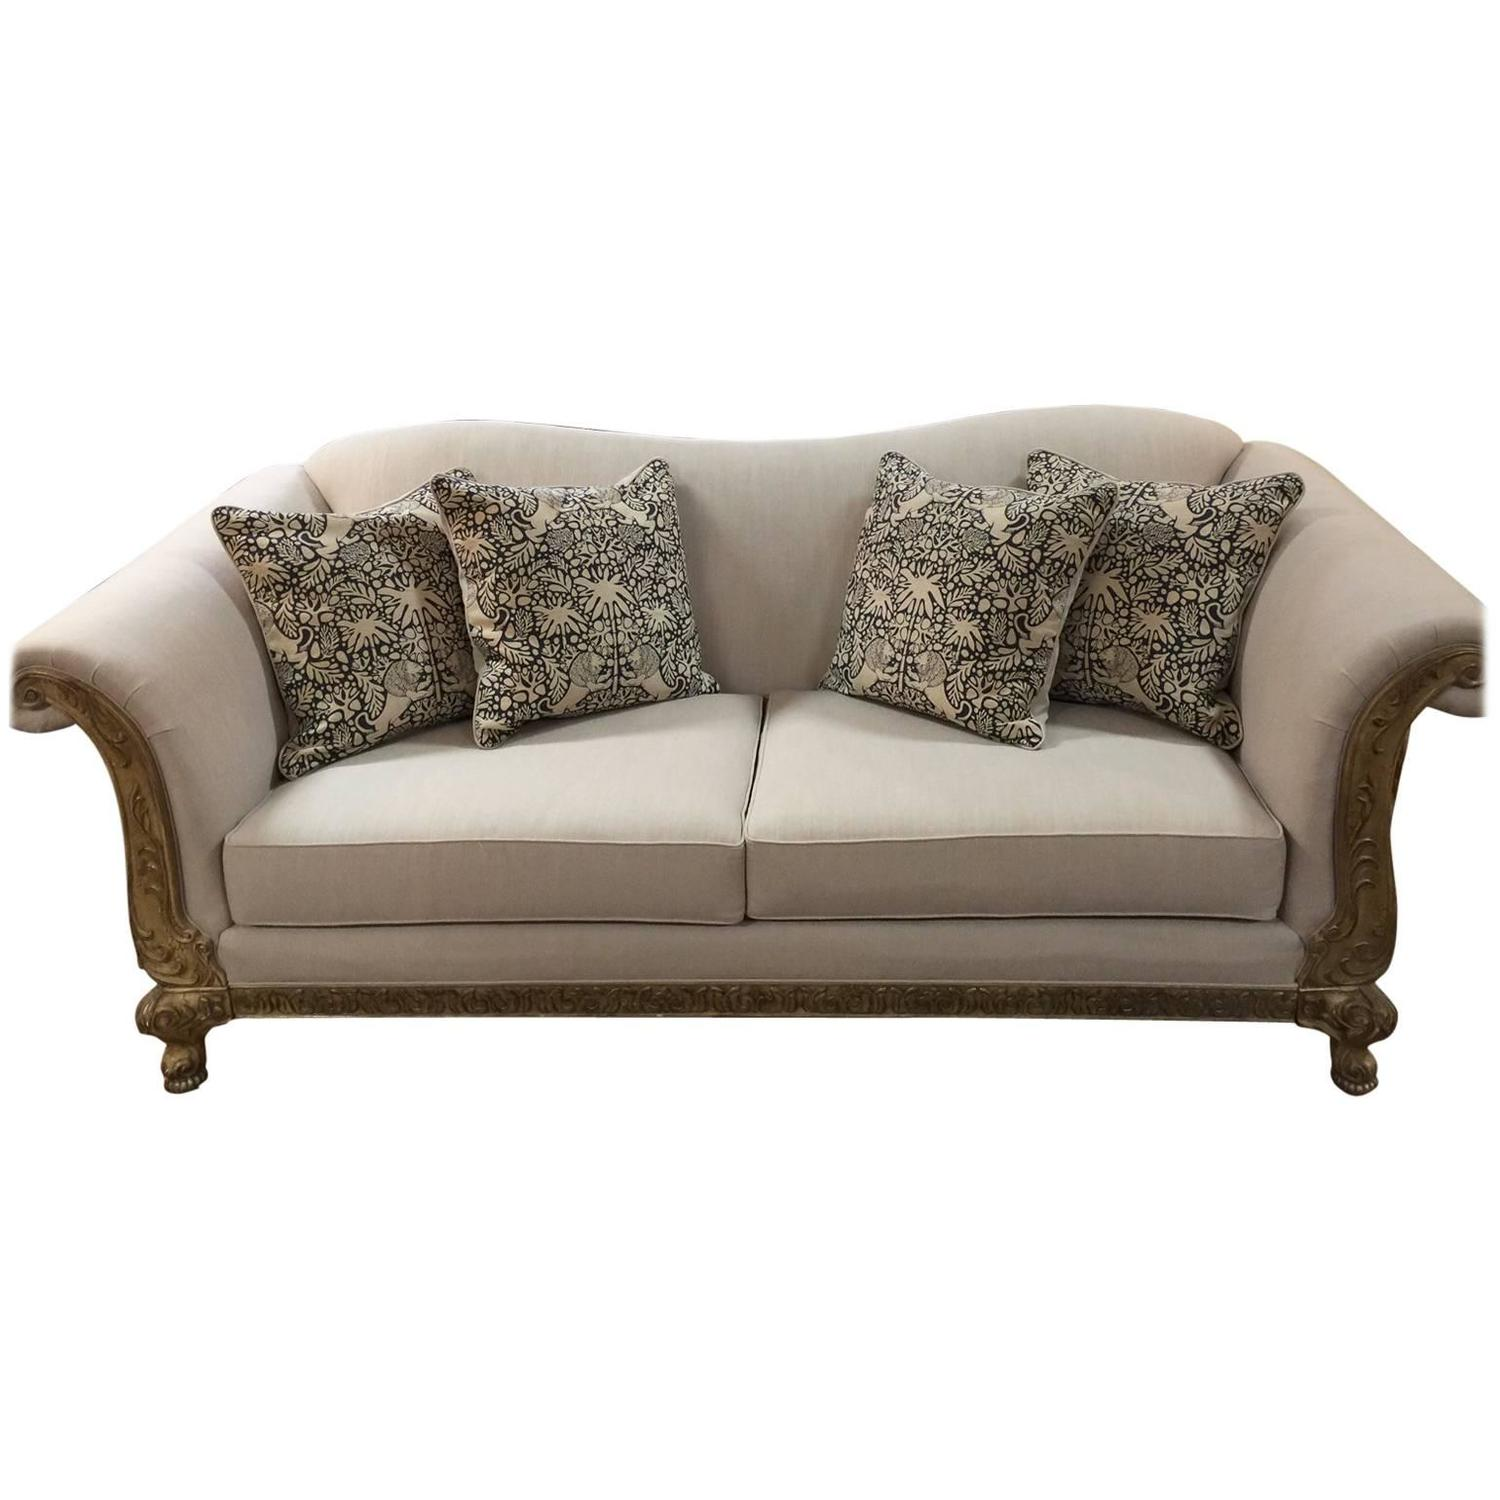 Vintage sofa with wood carved trim and pillows at stdibs